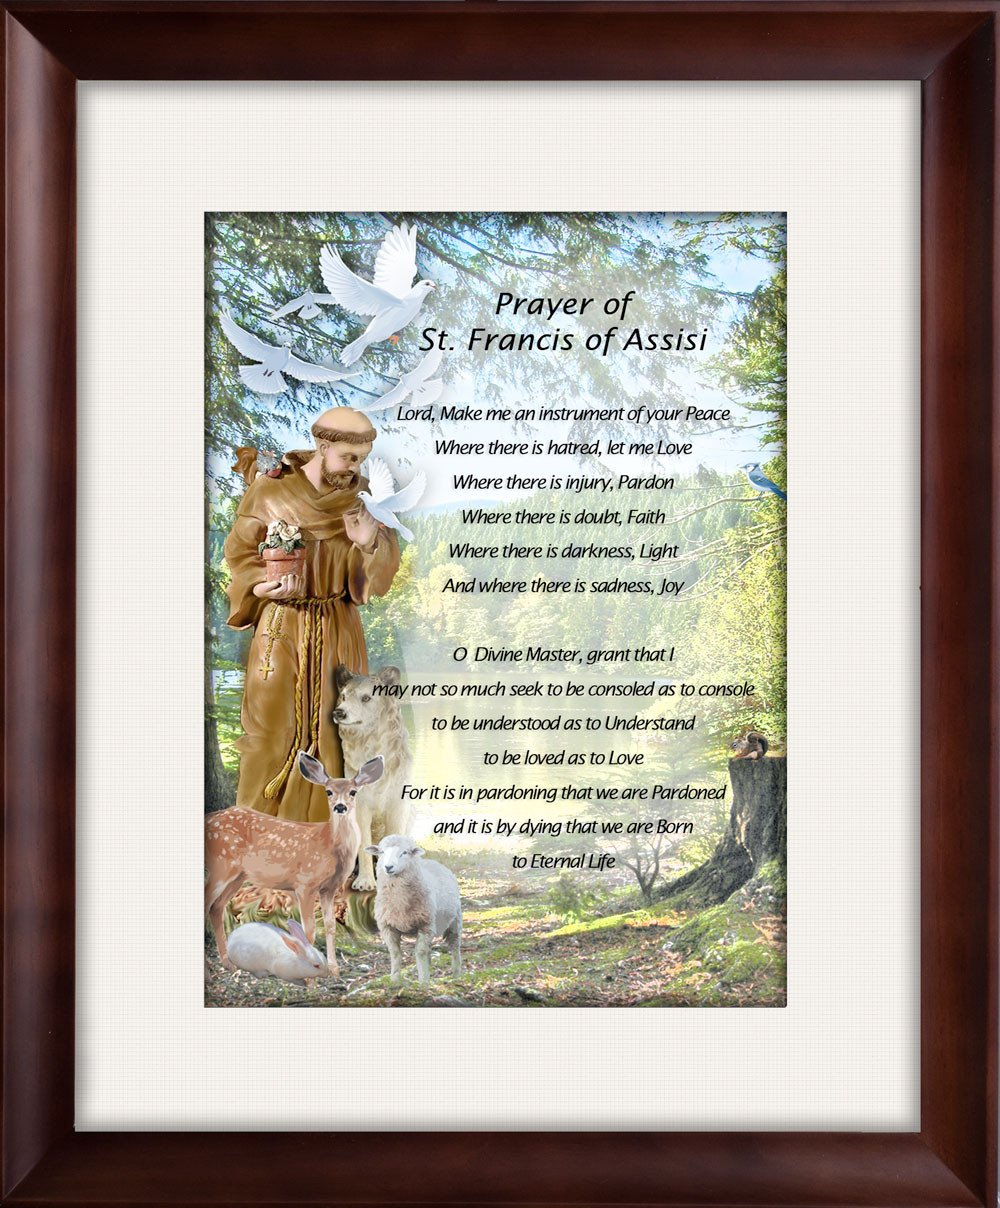 St. Francis Prayer - Framed on Fine Art Paper